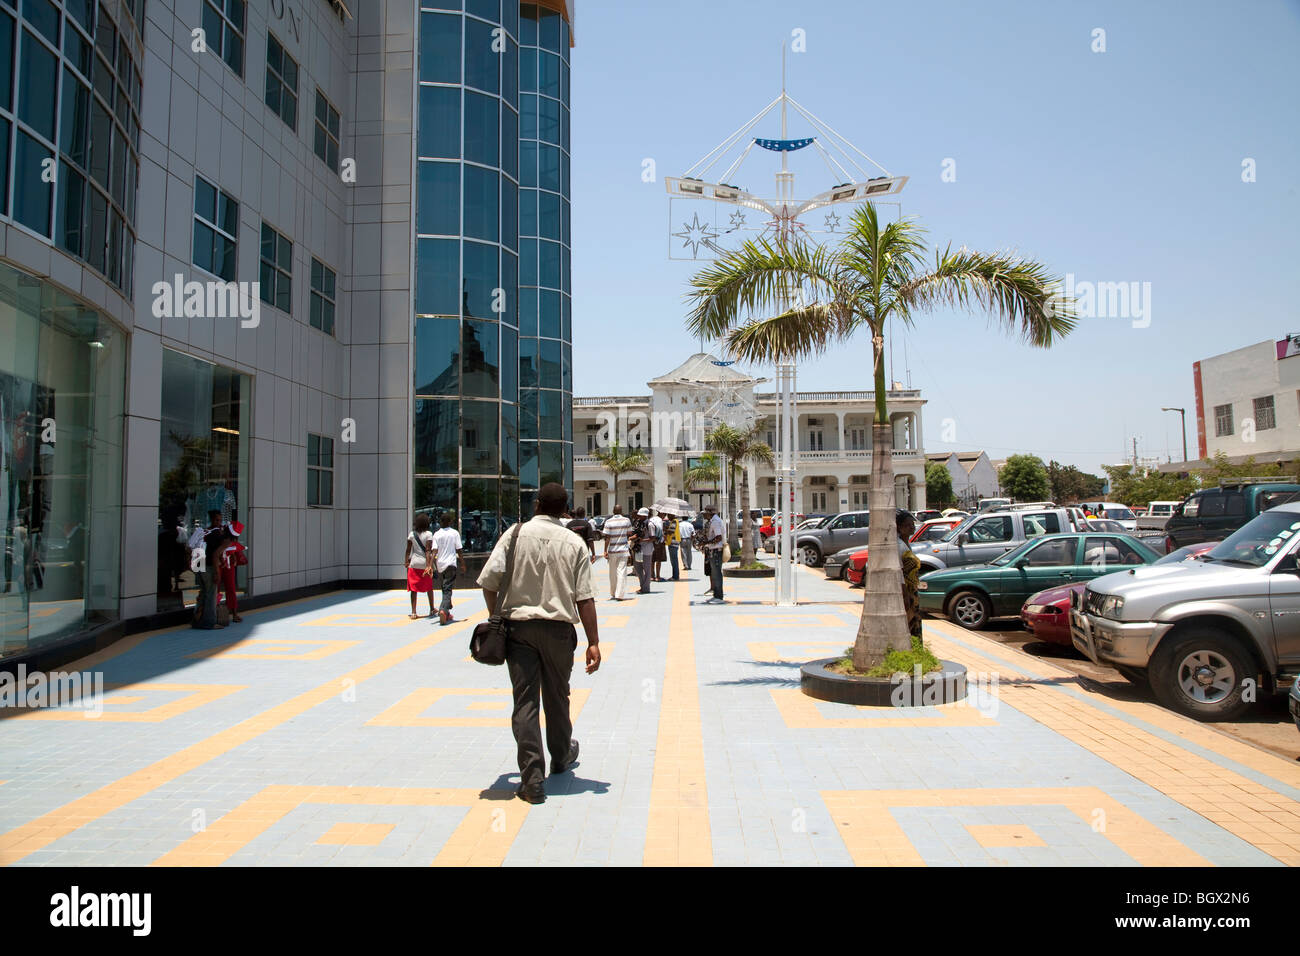 En dehors de la Lyon Shopping Centre, au Mozambique Photo Stock